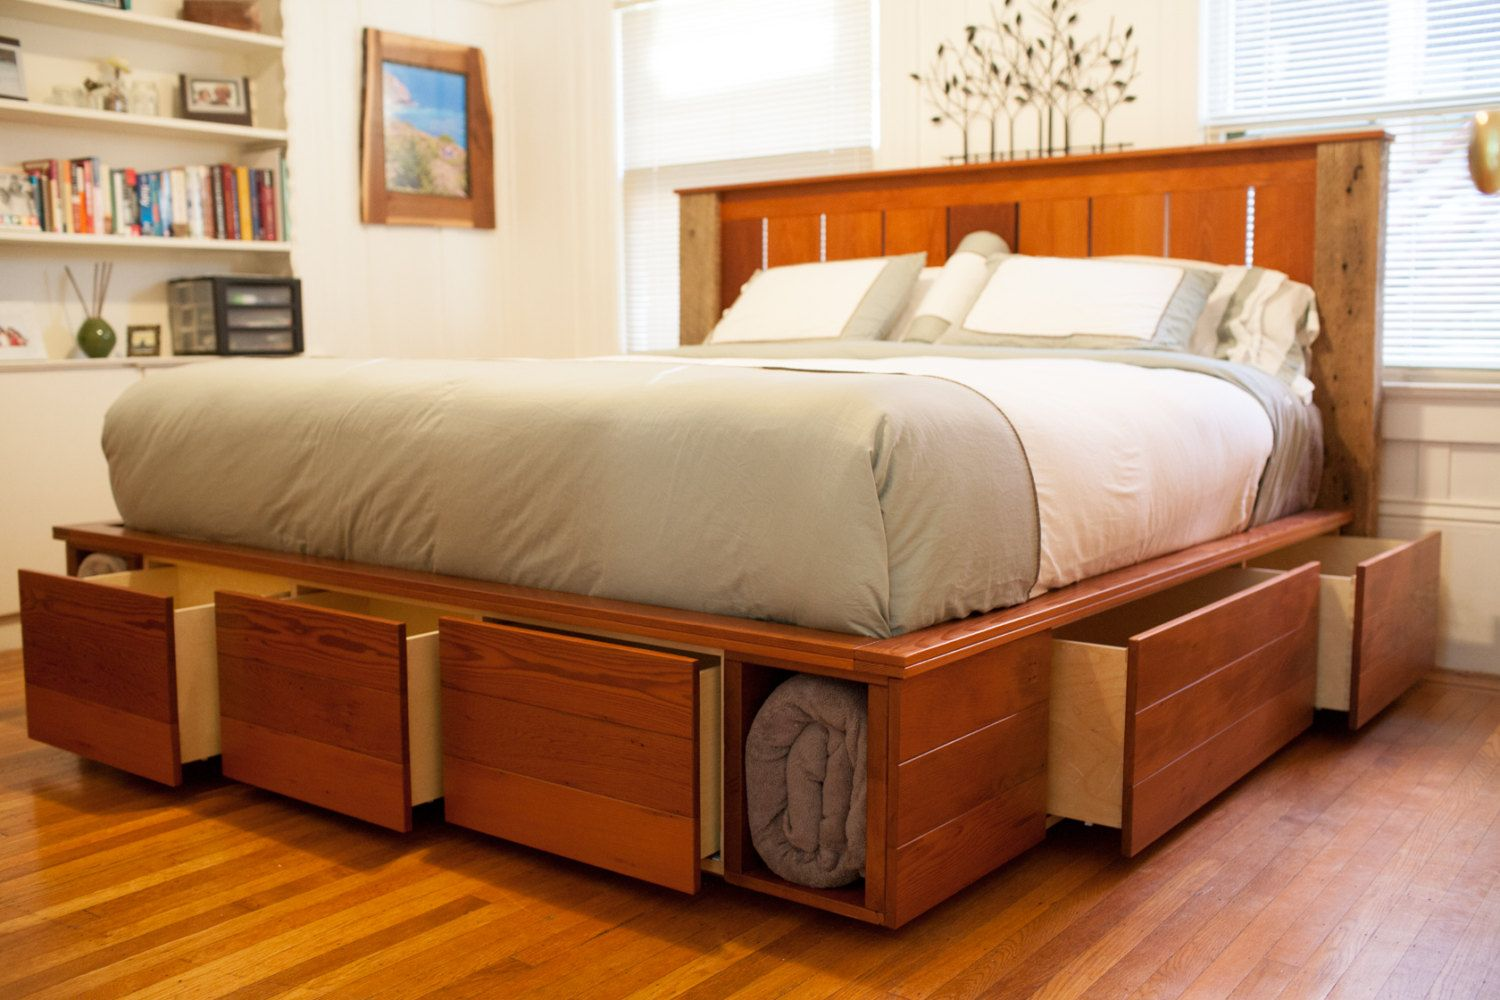 Platform Bed Woodworking Plans You Can Build This King Size Bed